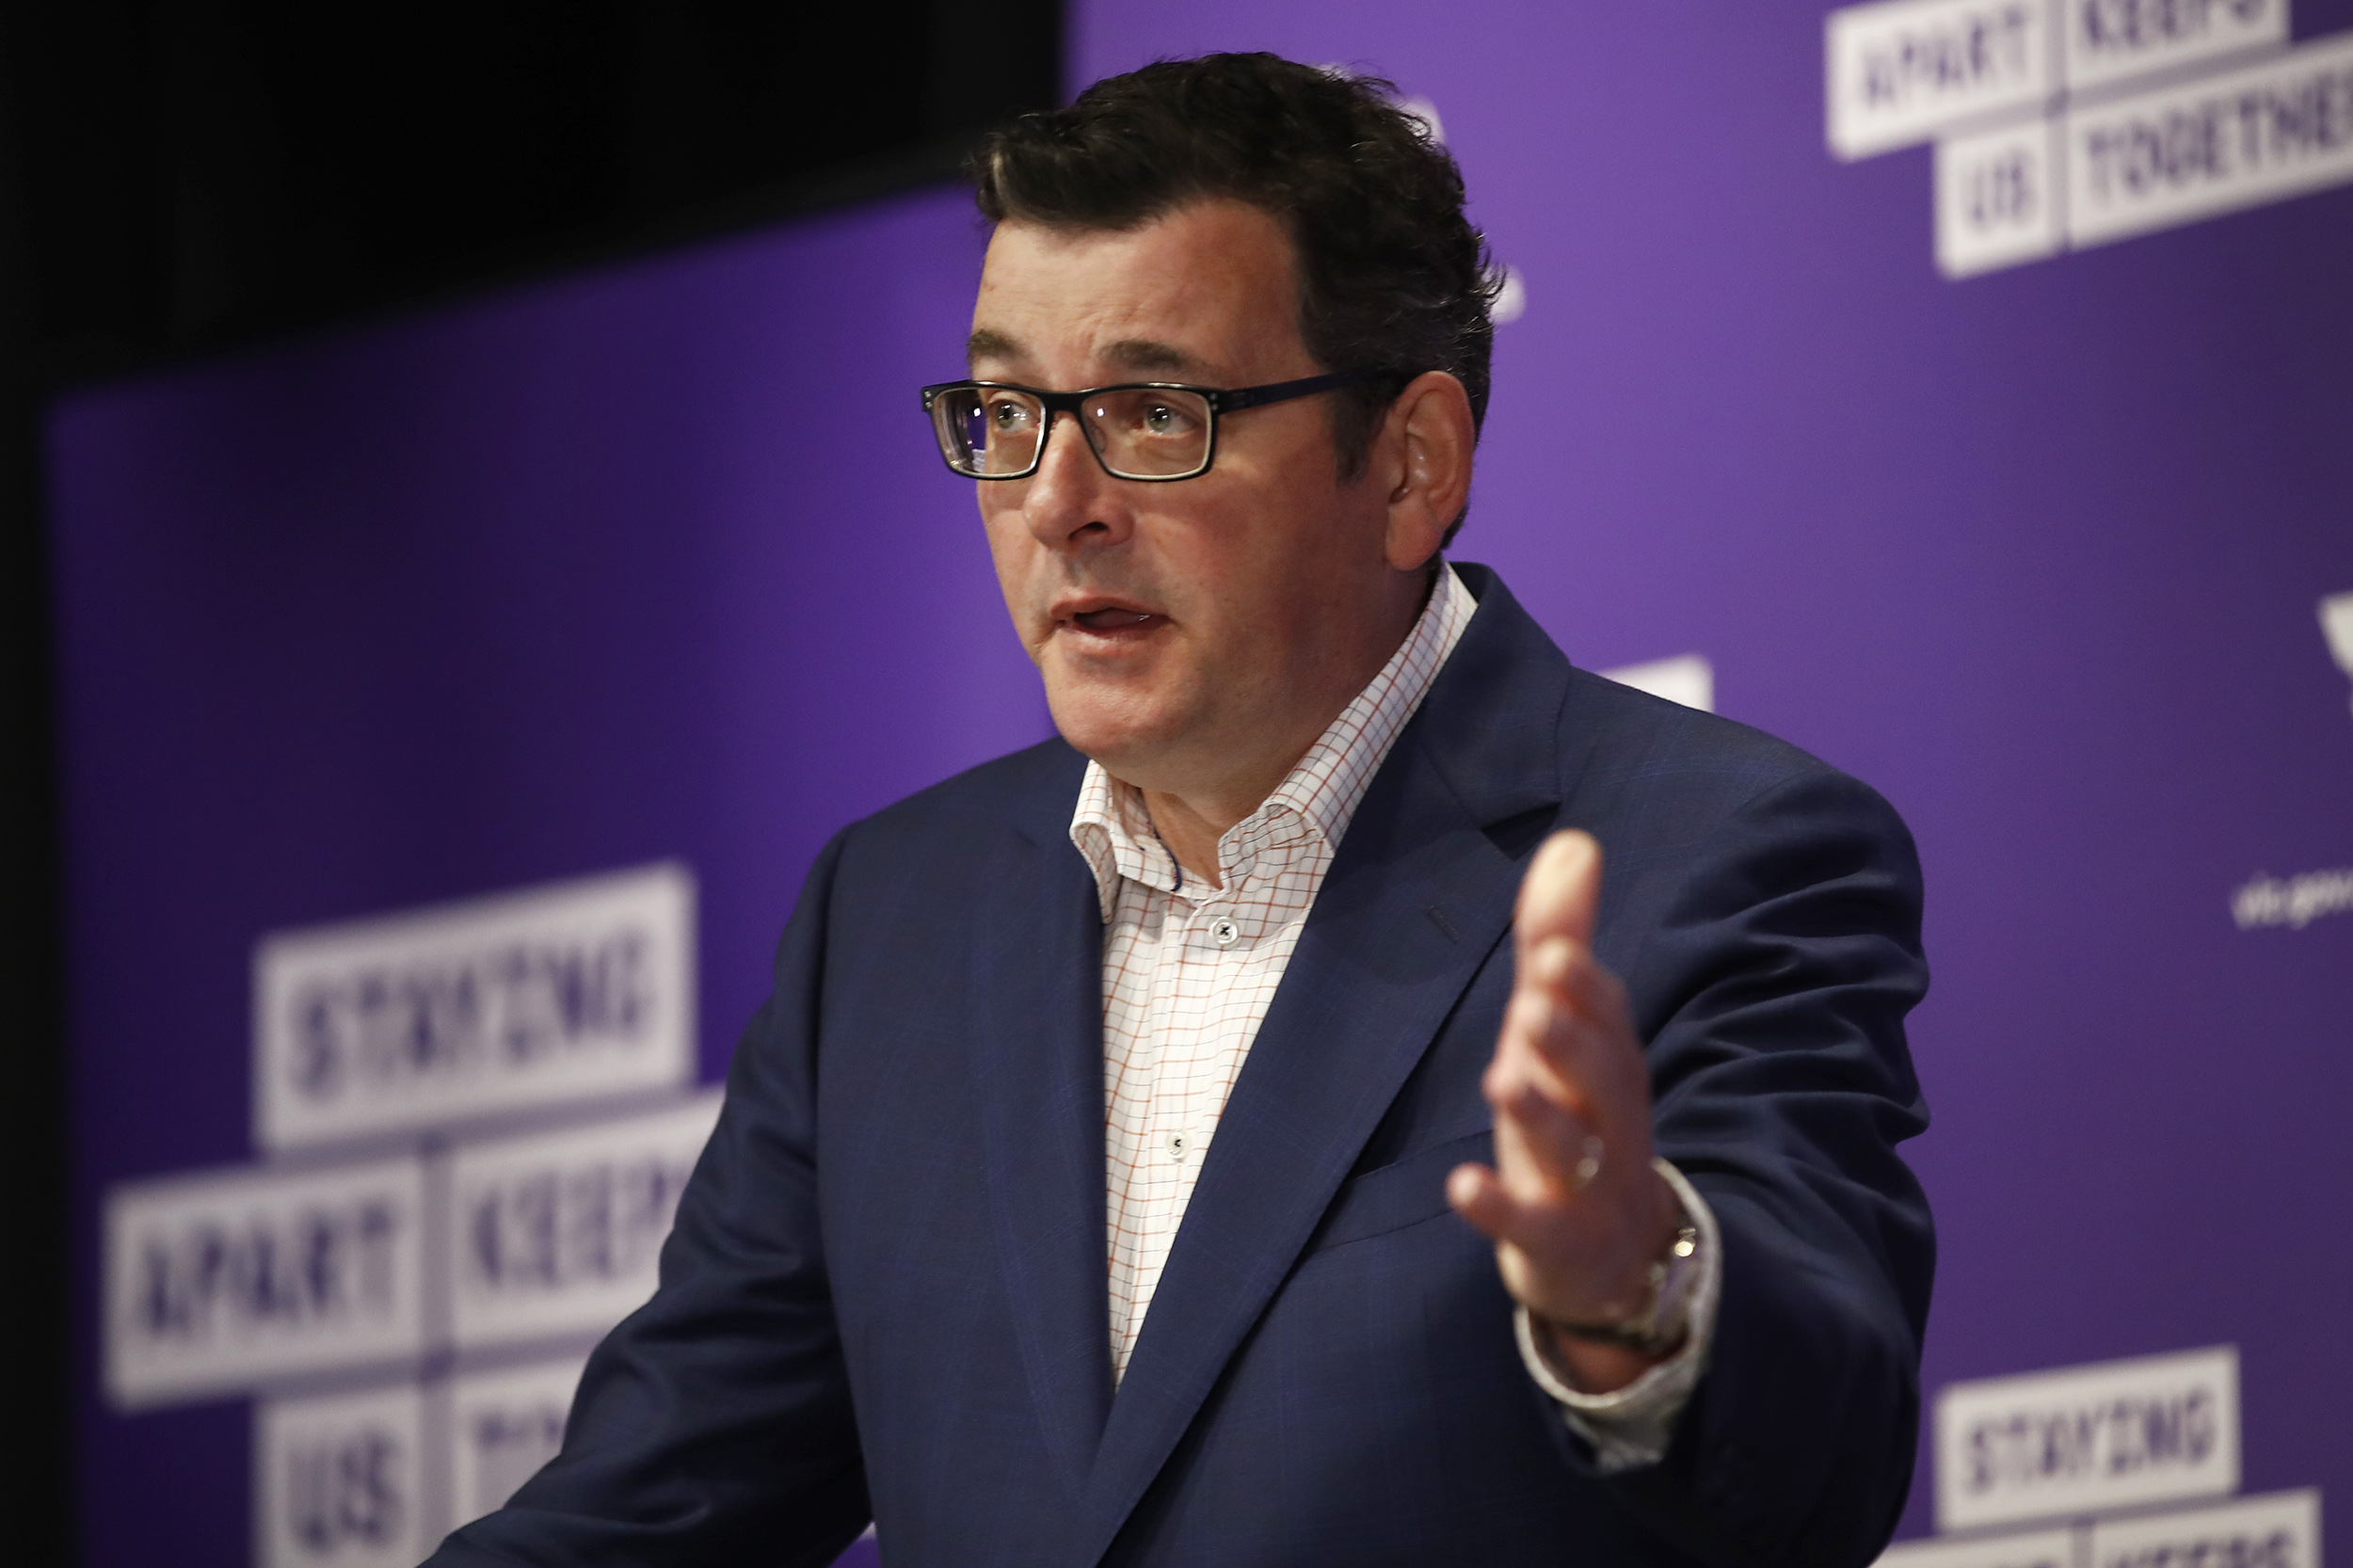 Victorian Premier Daniel Andrews speaks to the media during a news conference on September 6, in Melbourne, Australia.